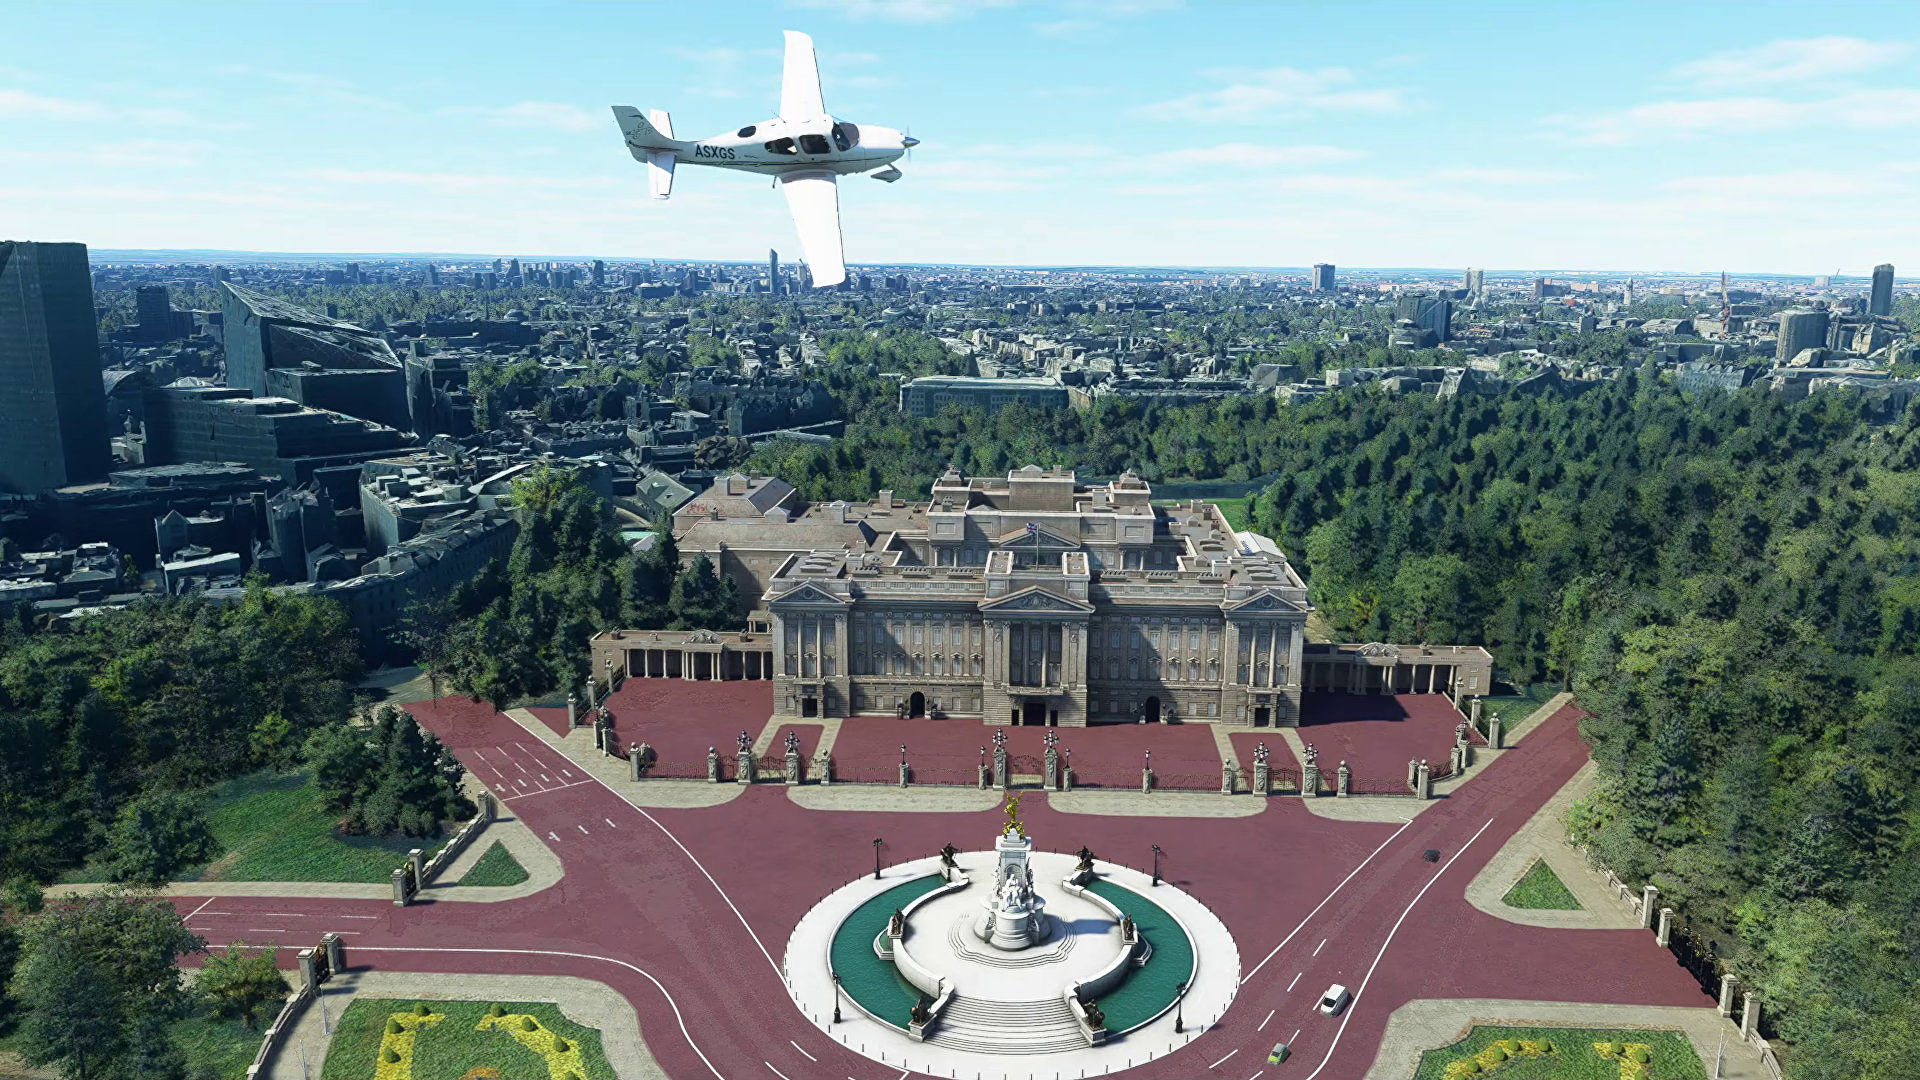 Microsoft Flight Simulator has revamped the UK and Ireland